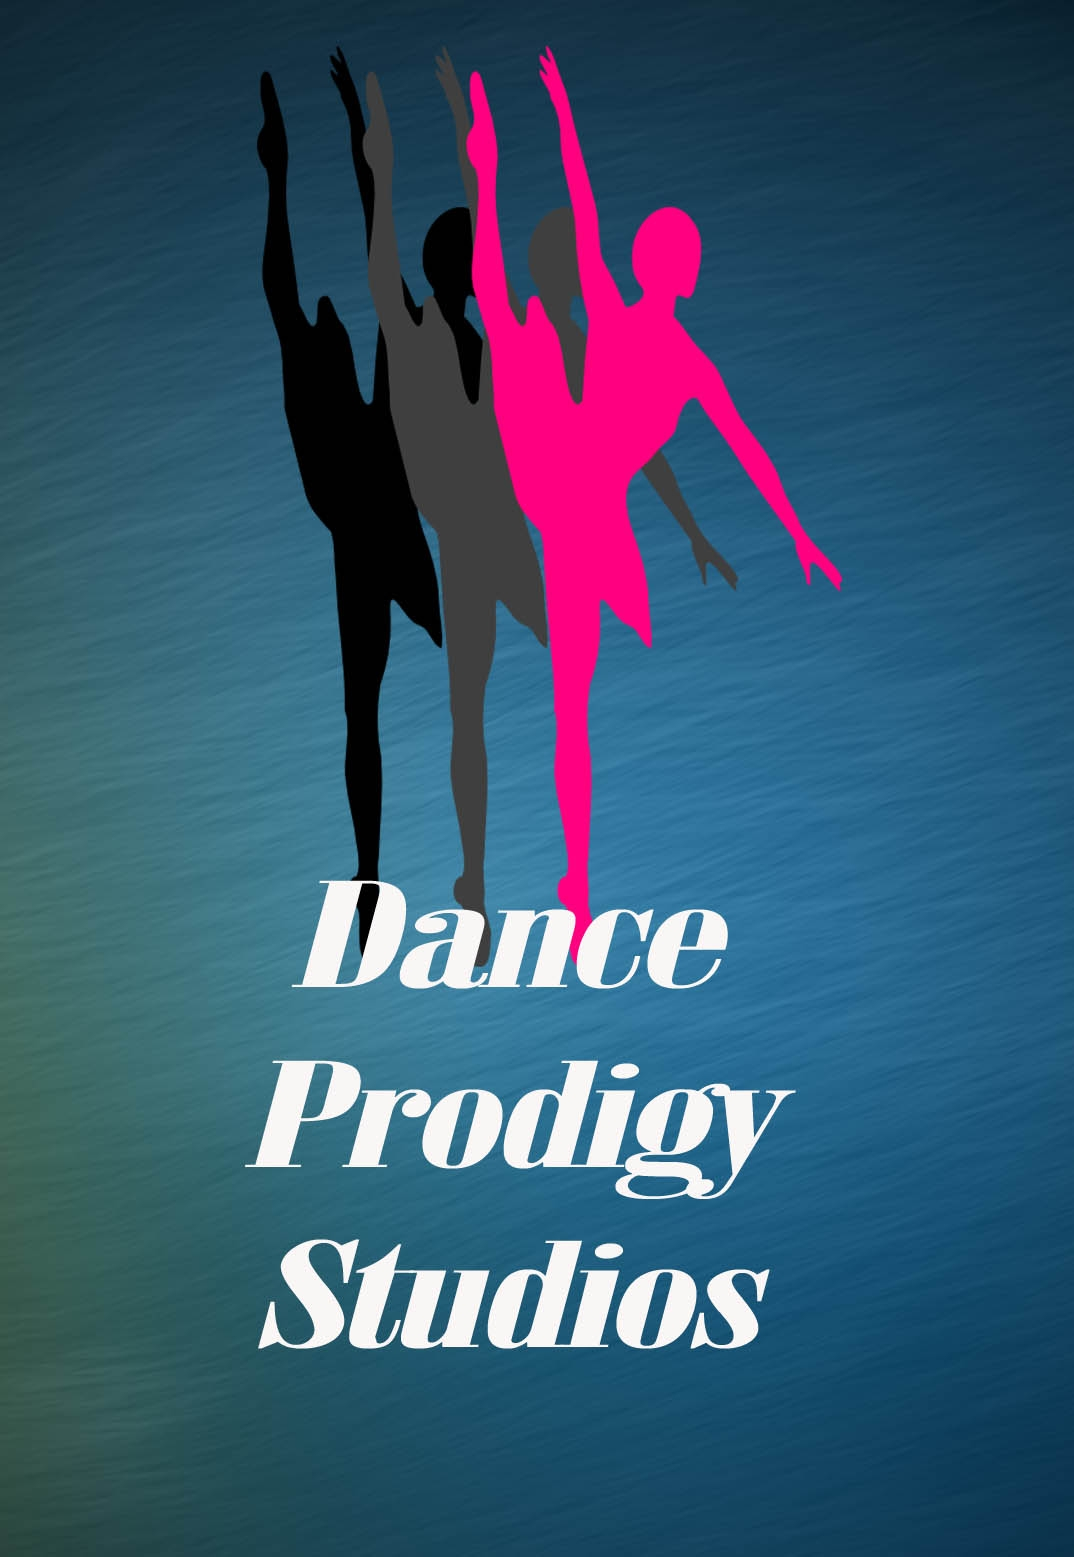 DANCE PRODIGY RECITAL 2016 SUNDAY, MAY 22, 2016